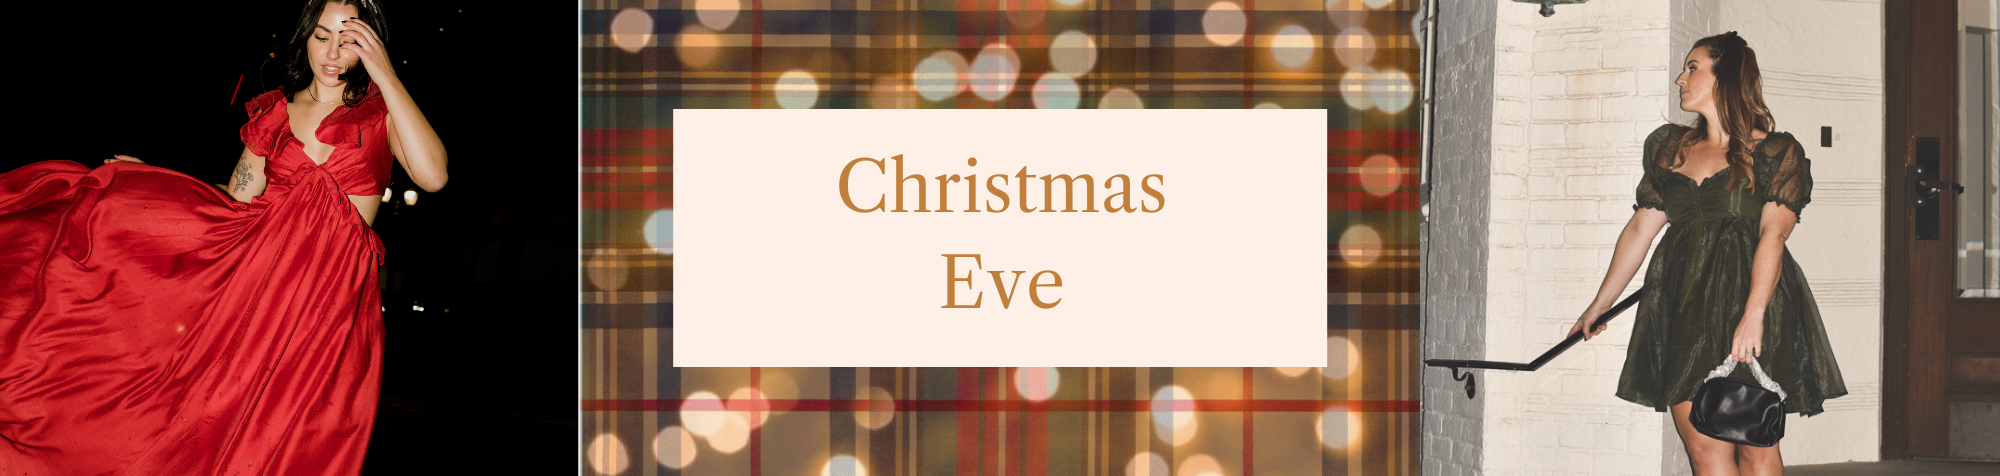 Christmas Eve Outfit Ideas